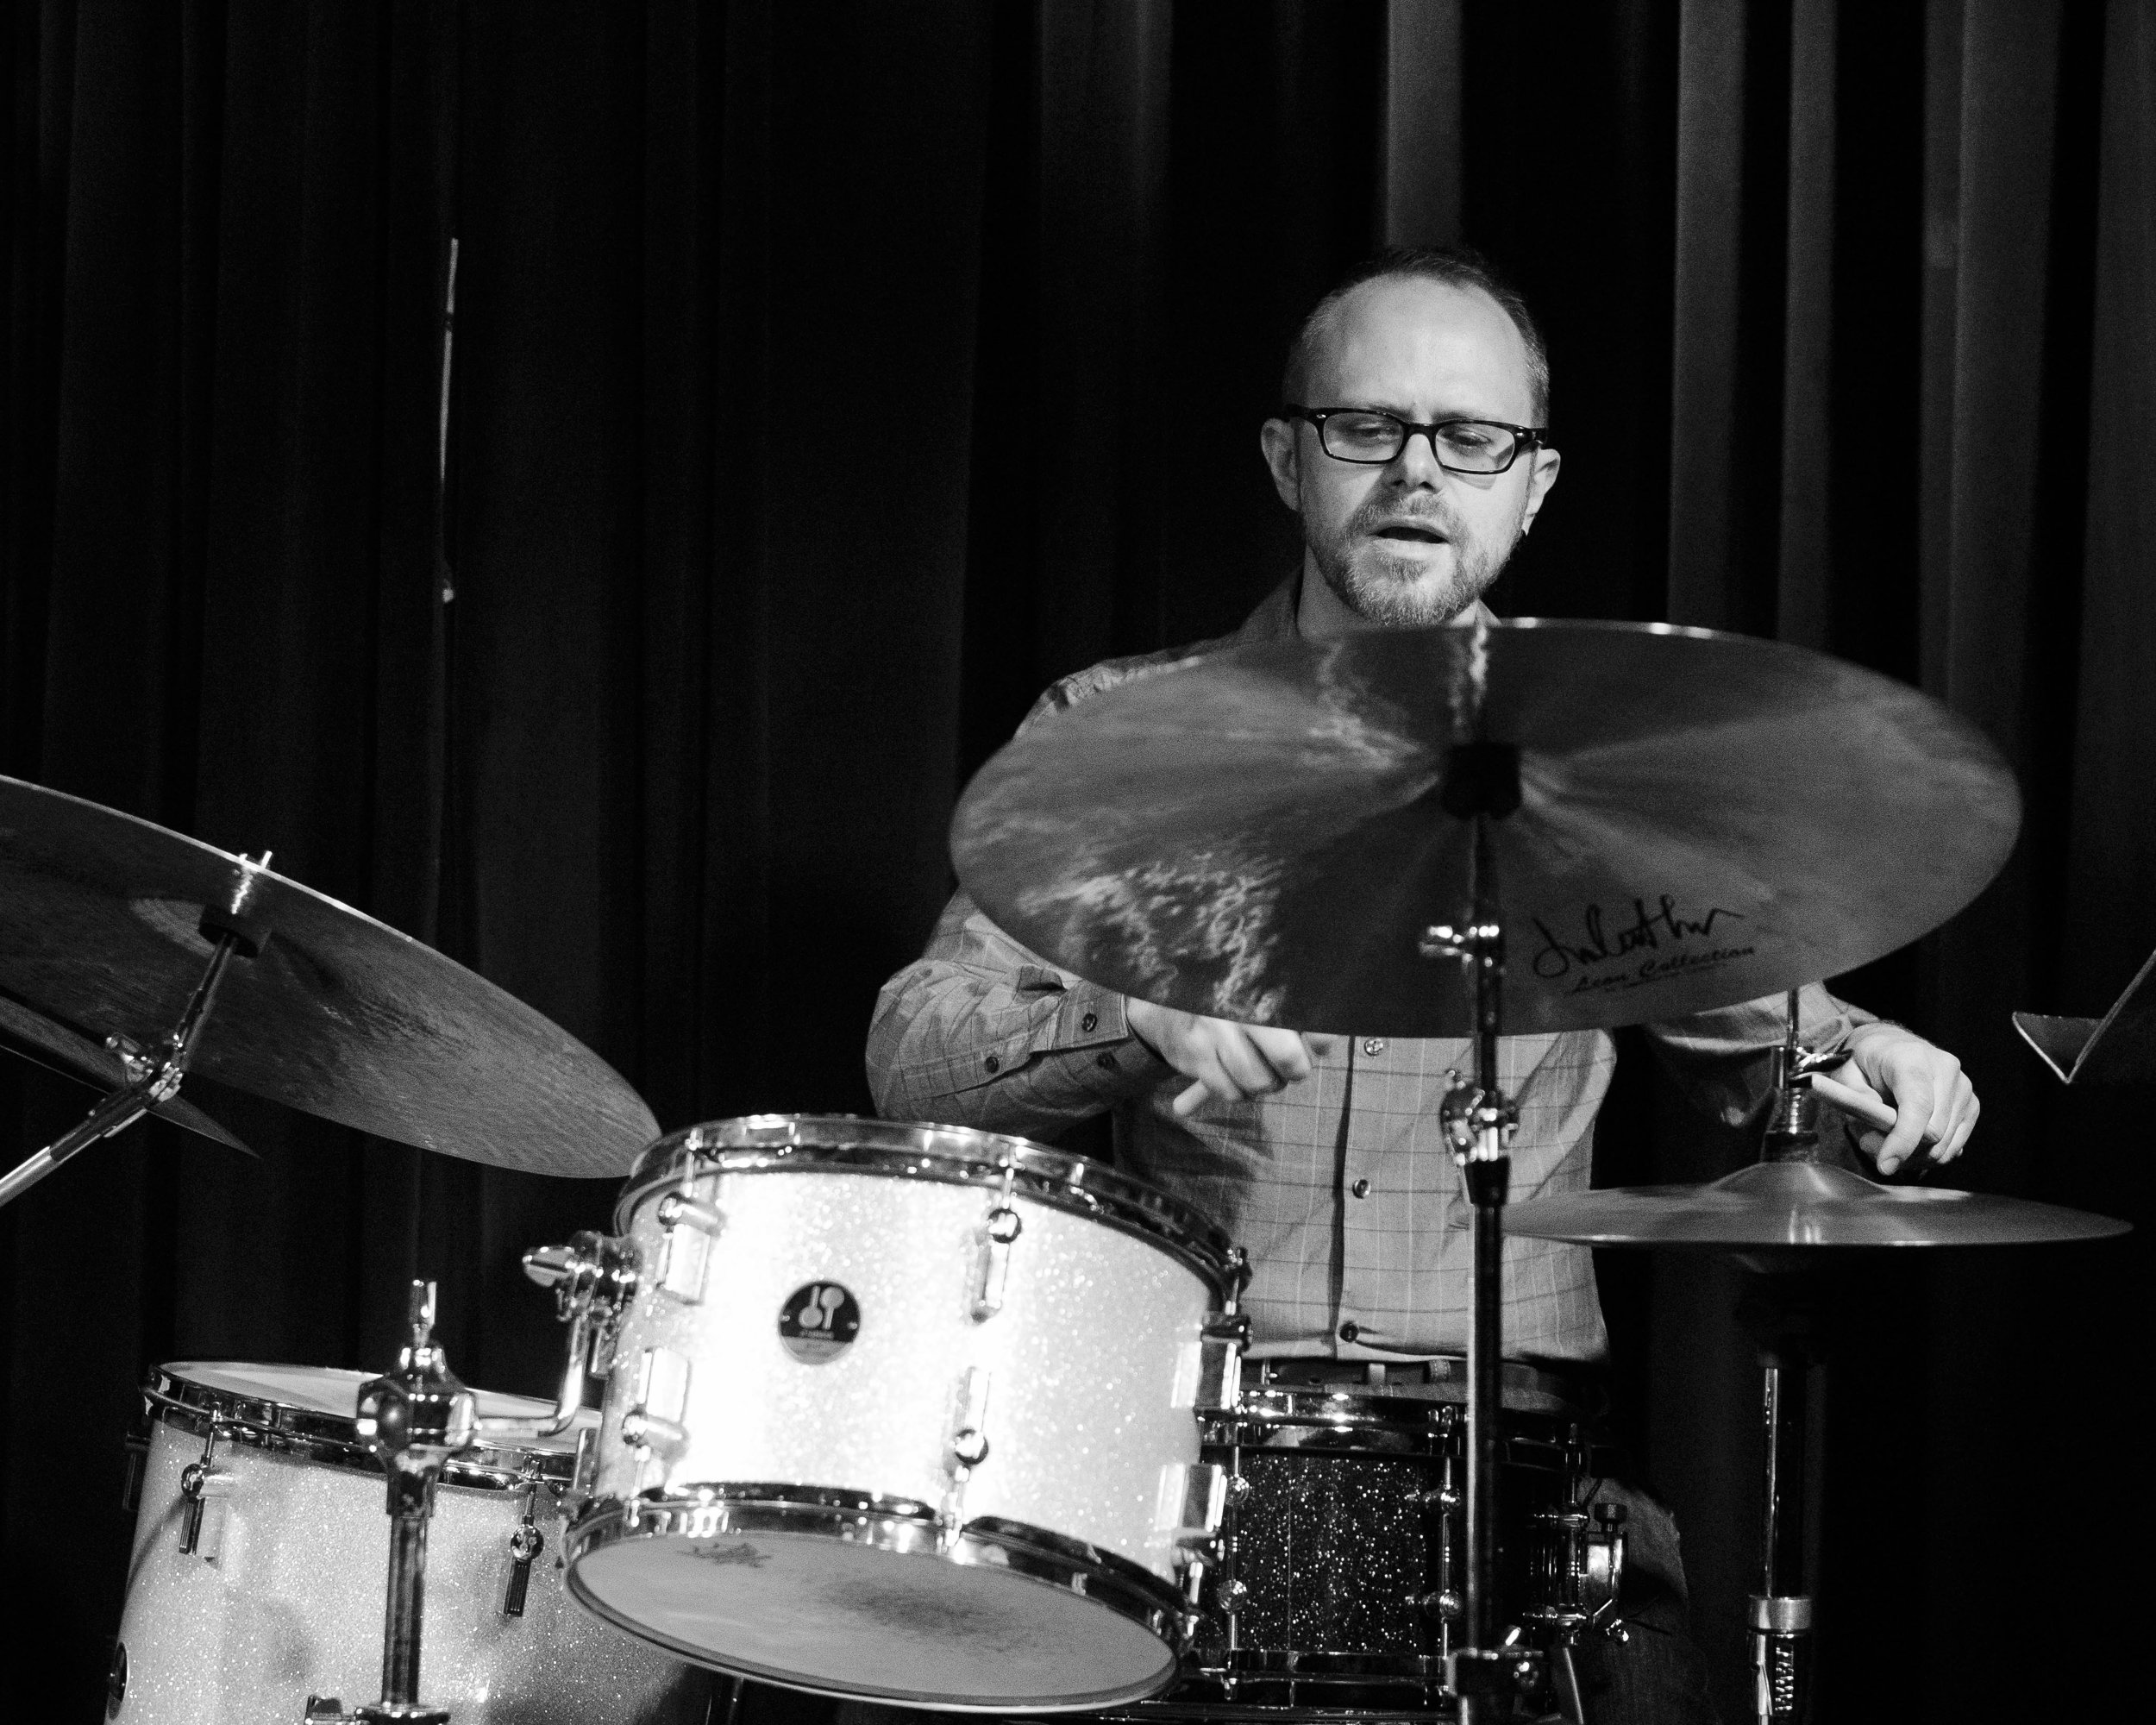 Ryan Anthony on drums with Union 32 playing scandinavian jazz